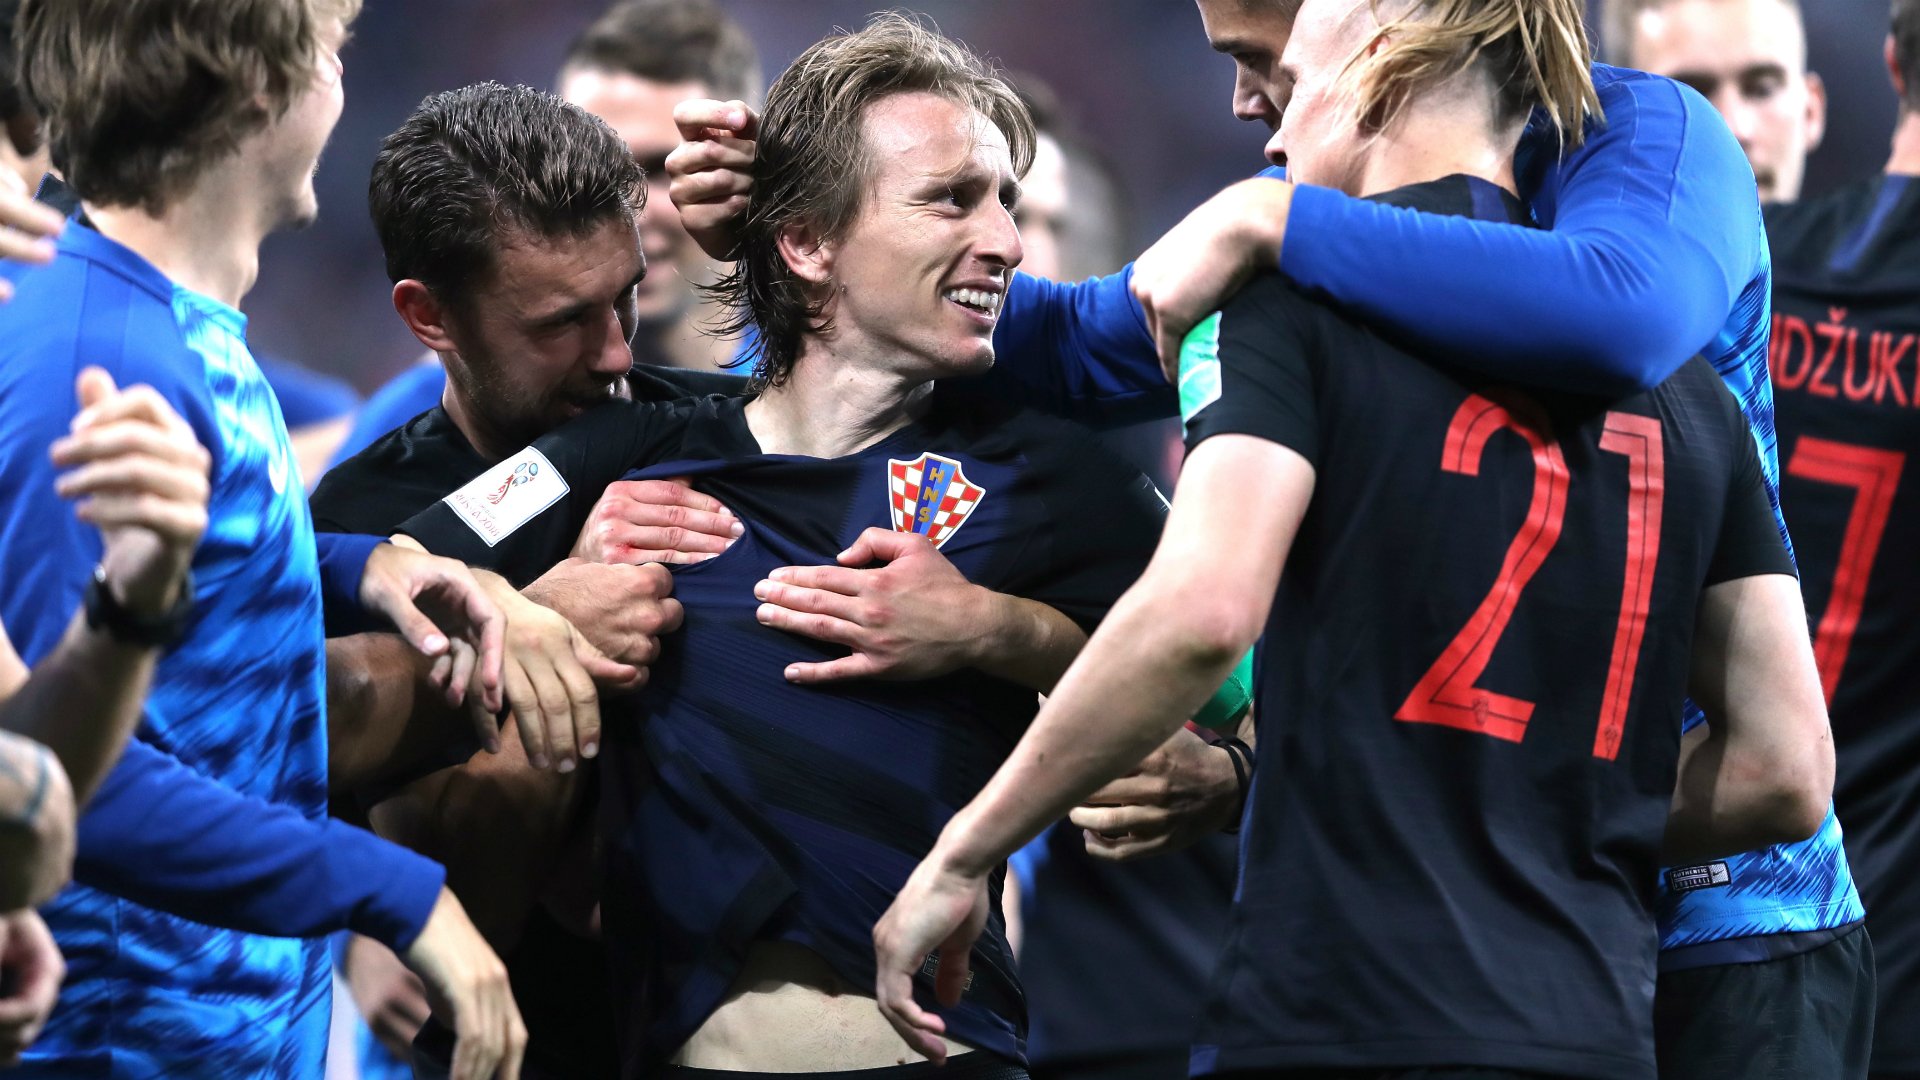 Croatia breaks Russian hearts, eliminating World Cup host in penalty shootout